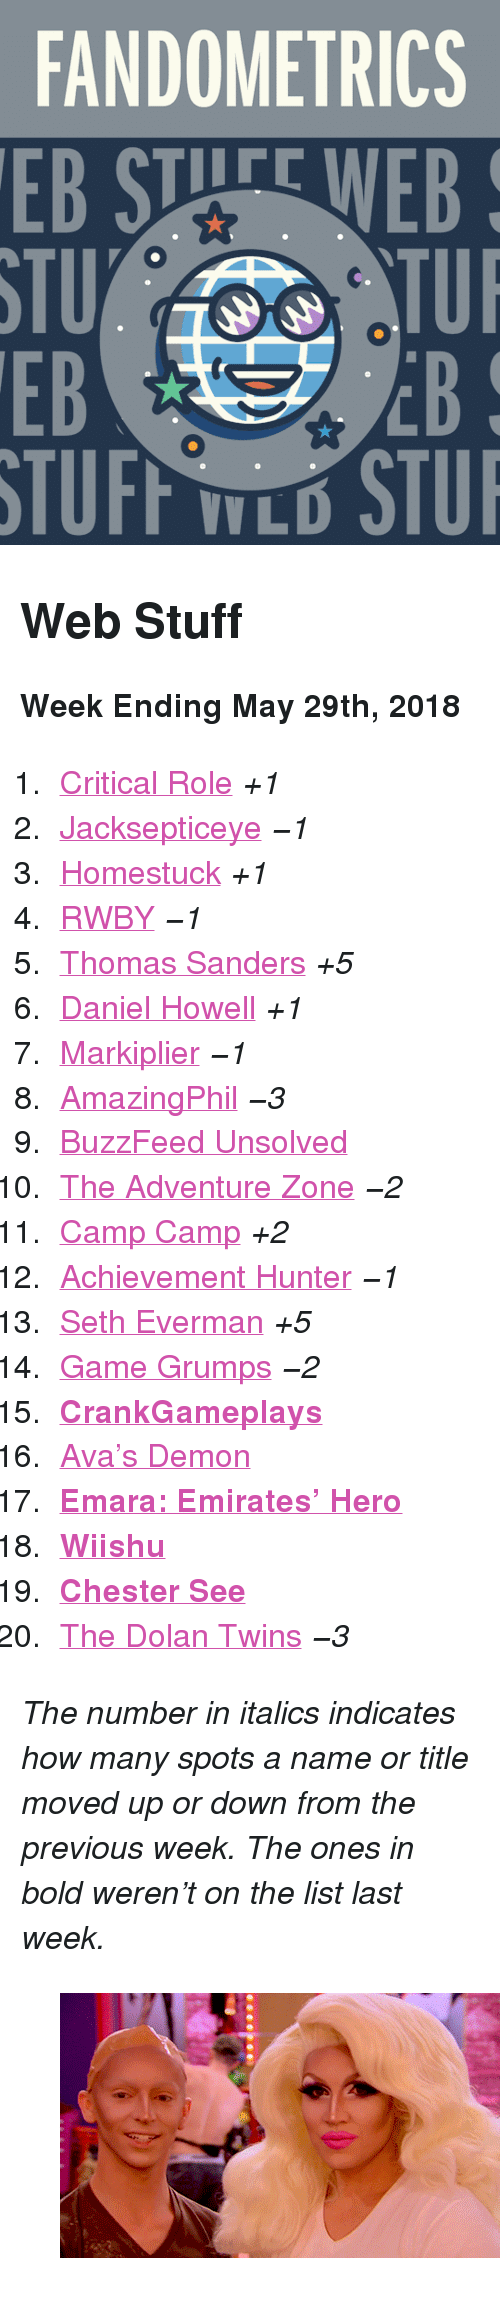 """RWBY: FANDOMETRICS  STU  EB  TUFF TLO STU <h2>Web Stuff</h2><p><b>Week Ending May 29th, 2018</b></p><ol><li><a href=""""http://www.tumblr.com/search/critical%20role"""">Critical Role</a><i>+1</i></li>  <li><a href=""""http://www.tumblr.com/search/jacksepticeye"""">Jacksepticeye</a><i><i>−1</i></i></li>  <li><a href=""""http://www.tumblr.com/search/homestuck"""">Homestuck</a><i>+1</i></li>  <li><a href=""""http://www.tumblr.com/search/rwby"""">RWBY</a><i><i><i>−1</i></i></i></li>  <li><a href=""""http://www.tumblr.com/search/thomas%20sanders"""">Thomas Sanders</a><i>+5</i></li>  <li><a href=""""http://www.tumblr.com/search/daniel%20howell"""">Daniel Howell</a><i>+1</i></li>  <li><a href=""""http://www.tumblr.com/search/markiplier"""">Markiplier</a><i><i>−1</i></i></li>  <li><a href=""""http://www.tumblr.com/search/amazingphil"""">AmazingPhil</a><i><i>−3</i></i></li>  <li><a href=""""http://www.tumblr.com/search/buzzfeed%20unsolved"""">BuzzFeed Unsolved</a></li>  <li><a href=""""http://www.tumblr.com/search/the%20adventure%20zone"""">The Adventure Zone</a><i><i>−2</i></i></li>  <li><a href=""""http://www.tumblr.com/search/camp%20camp"""">Camp Camp</a><i>+2</i></li>  <li><a href=""""http://www.tumblr.com/search/achievement%20hunter"""">Achievement Hunter</a><i><i>−1</i></i></li>  <li><a href=""""http://www.tumblr.com/search/seth%20everman"""">Seth Everman</a><i>+5</i></li>  <li><a href=""""http://www.tumblr.com/search/game%20grumps"""">Game Grumps</a><i><i>−2</i></i></li>  <li><a href=""""http://www.tumblr.com/search/crankgameplays""""><b>CrankGameplays</b></a></li>  <li><a href=""""http://www.tumblr.com/search/avas%20demon"""">Ava&rsquo;s Demon</a></li>  <li><a href=""""http://www.tumblr.com/search/emara""""><b>Emara: Emirates&rsquo; Hero</b></a></li>  <li><a href=""""http://www.tumblr.com/search/wiishu""""><b>Wiishu</b></a></li>  <li><a href=""""http://www.tumblr.com/search/chester%20see""""><b>Chester See</b></a></li>  <li><a href=""""http://www.tumblr.com/search/dolan%20twins"""">The Dolan Twins</a><i><i>−3</i></i></li></ol><p><i>The number in italics indicates how many spots a name"""